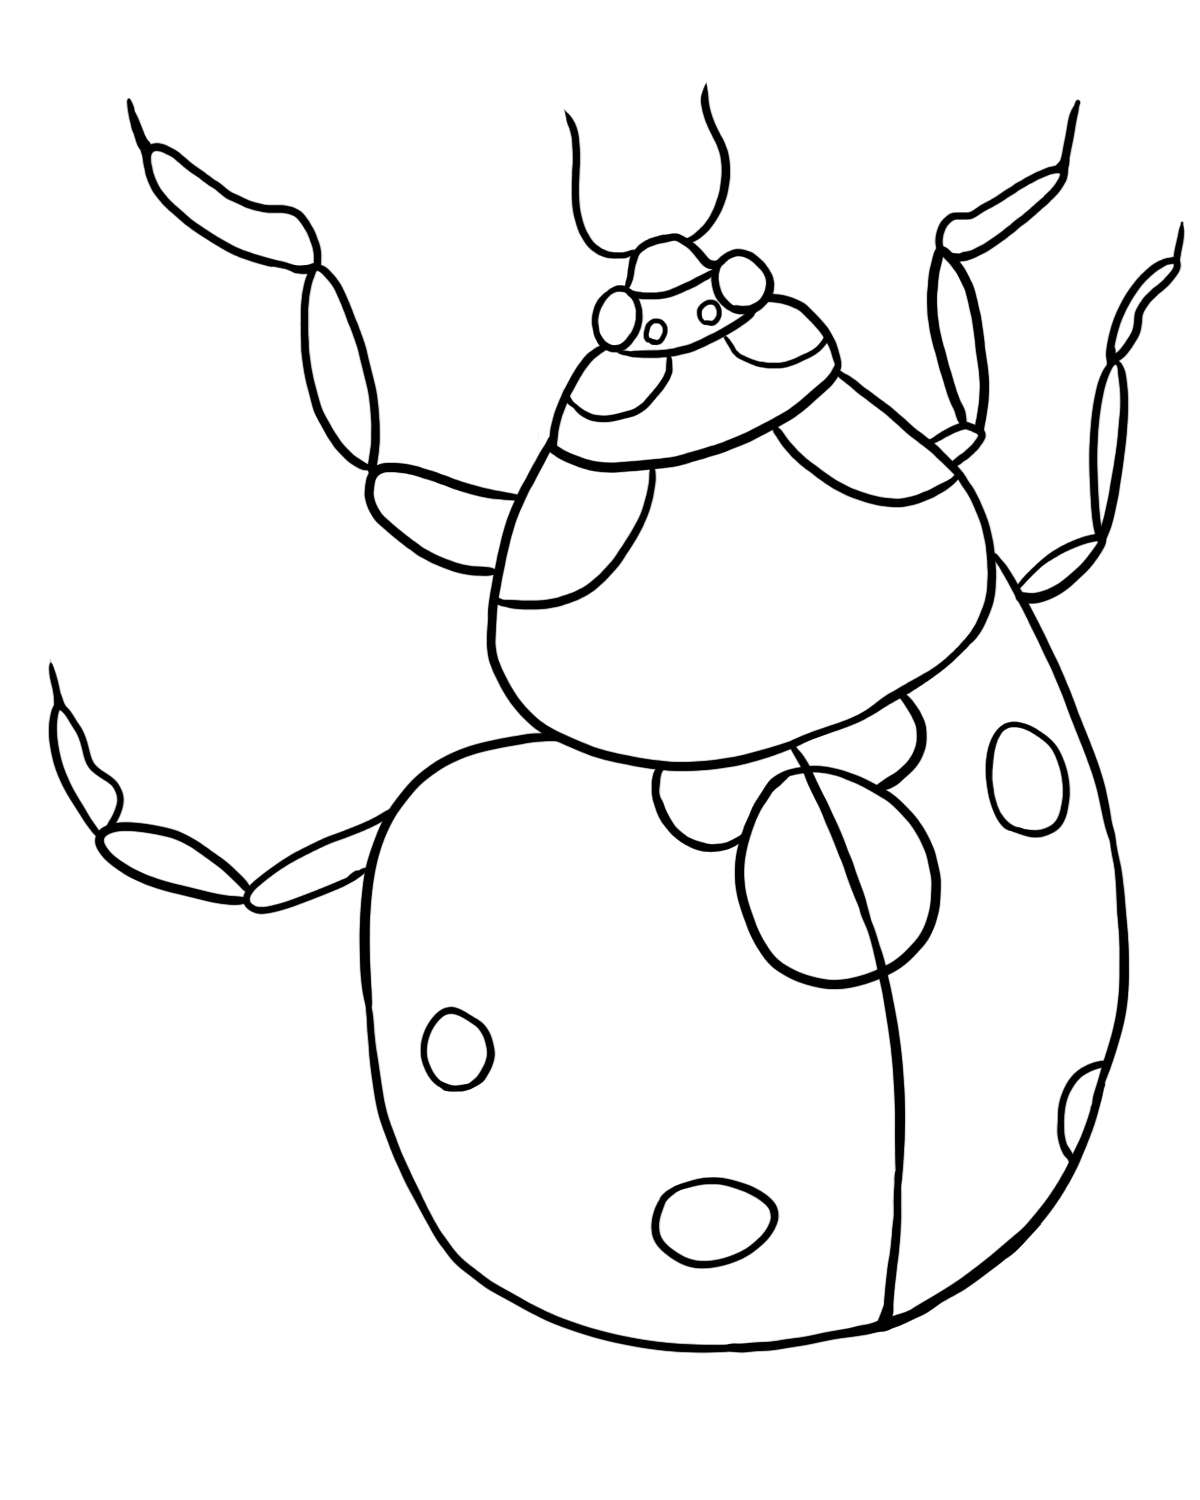 ladybug for coloring line art of cute ladybug with hearts free clip art for ladybug coloring